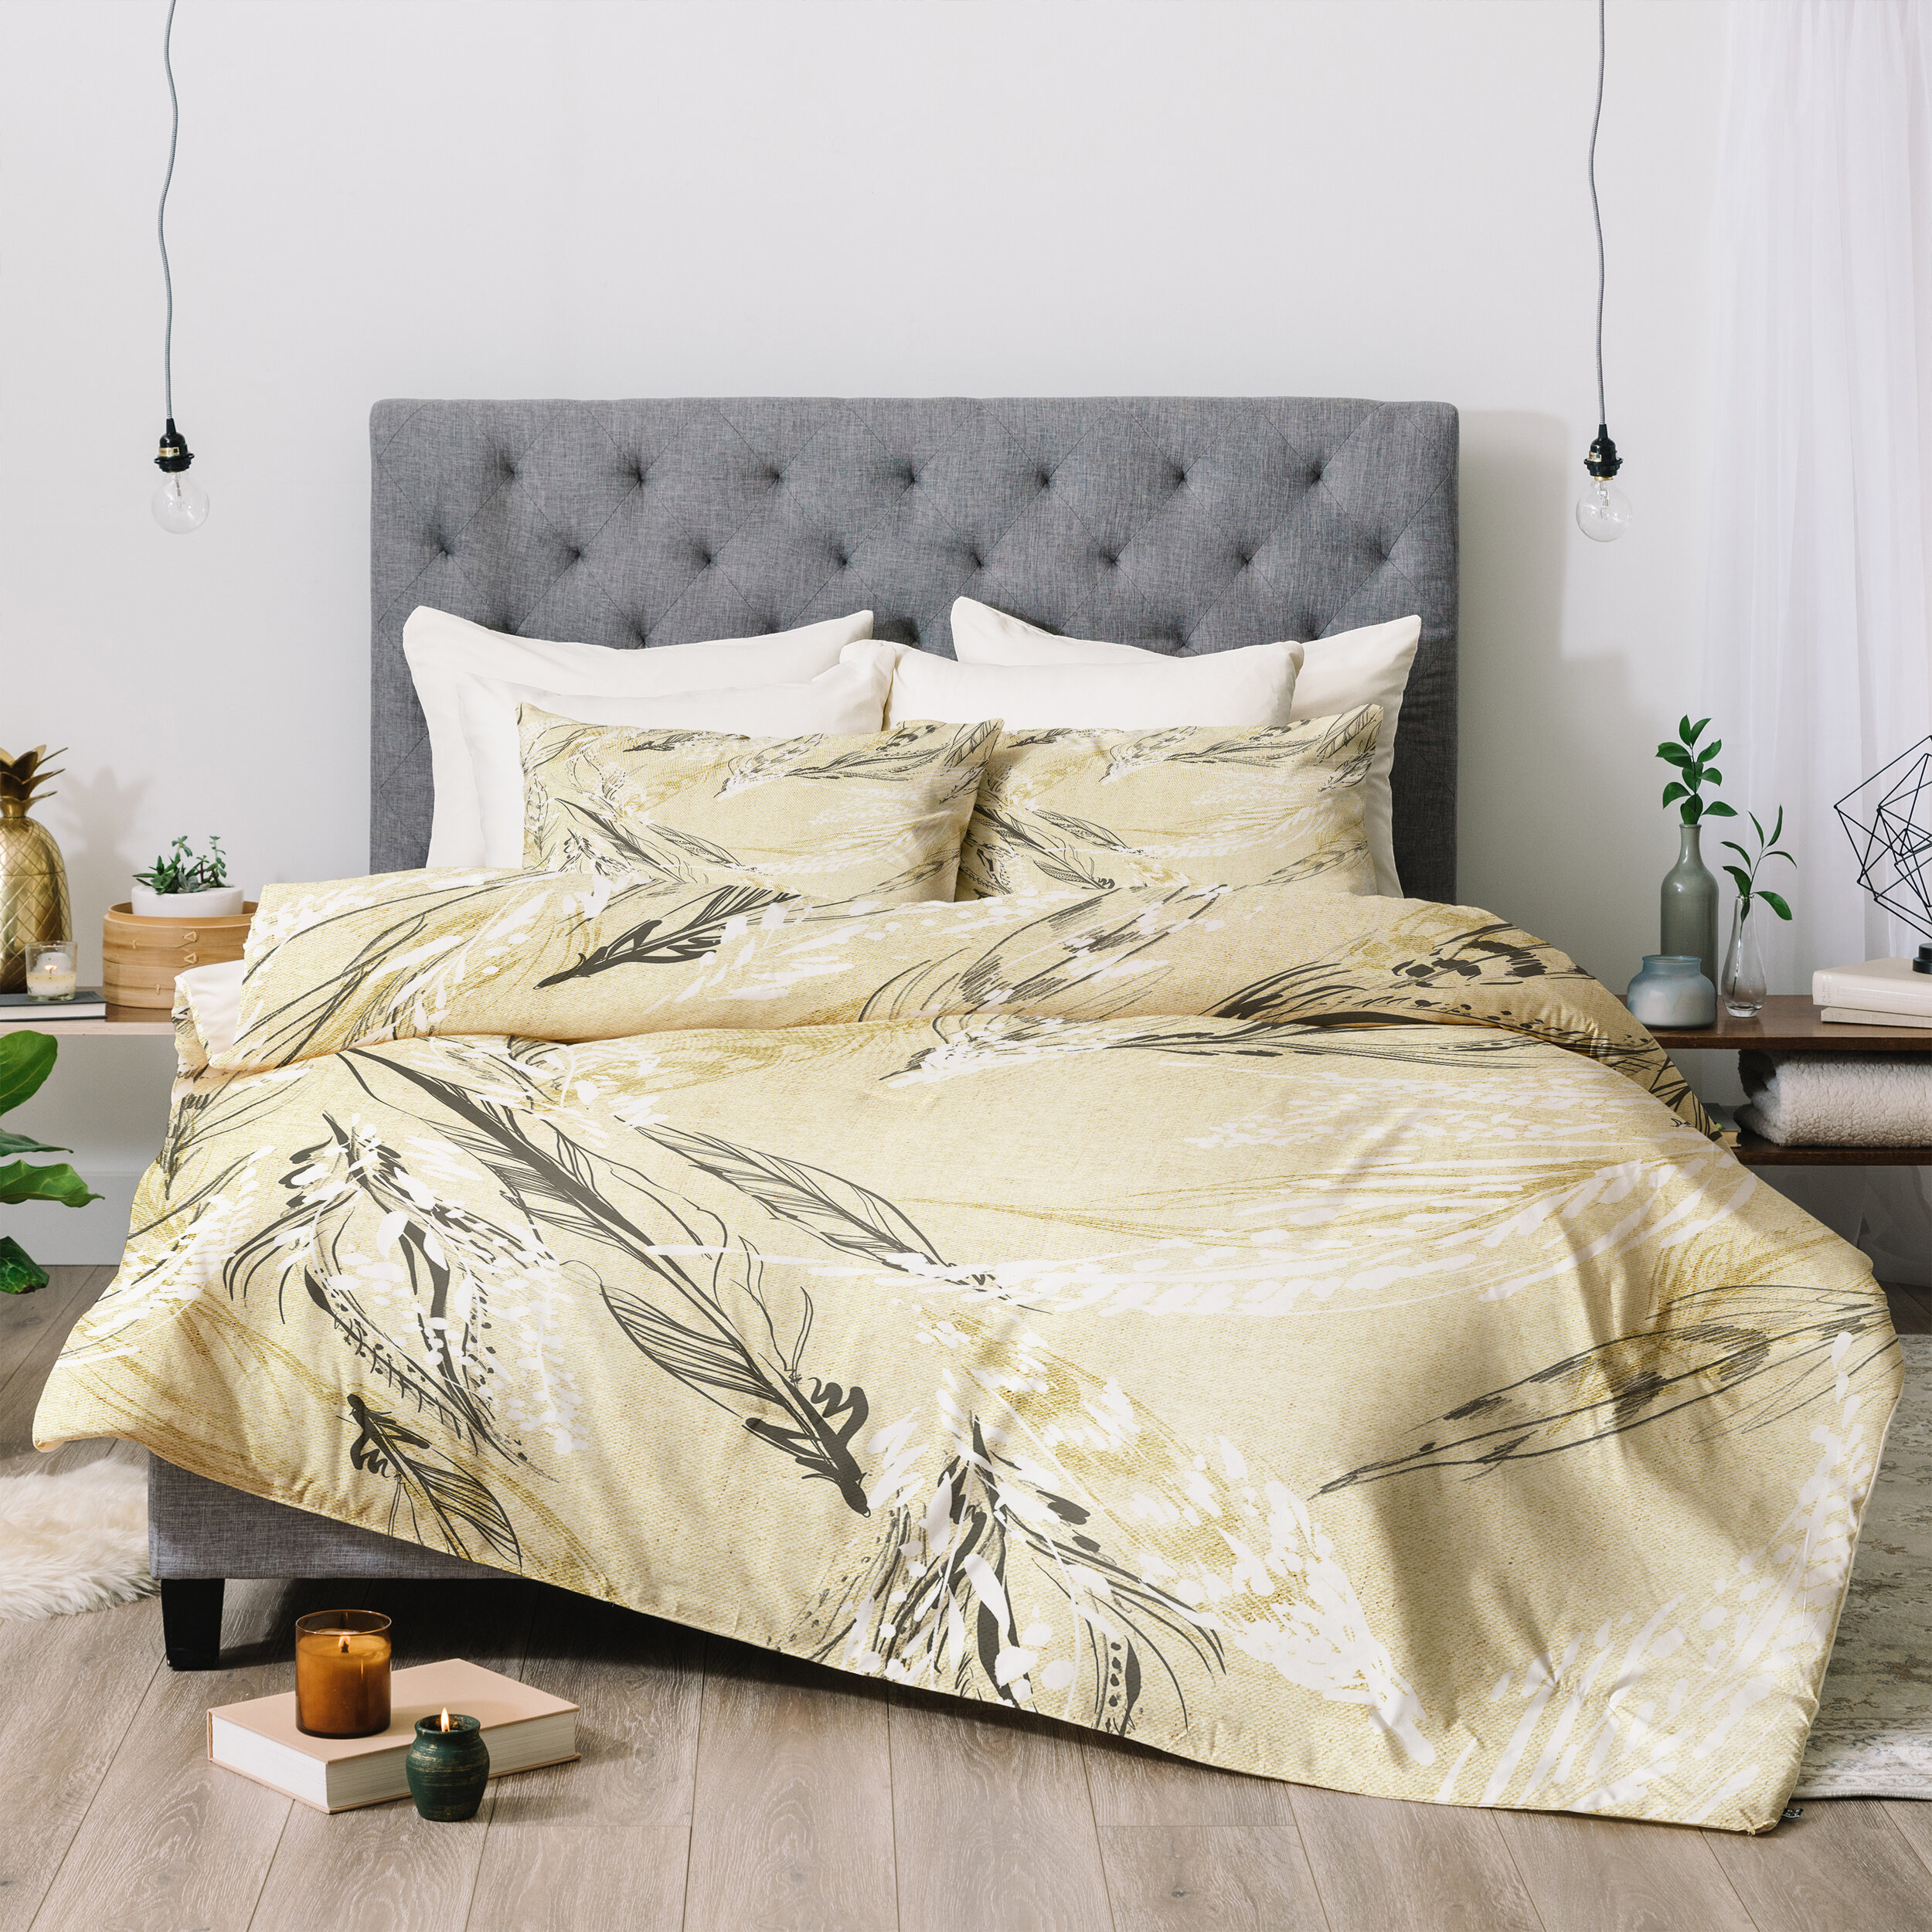 House of Bath Alpine Meadow White Double Duvet Set with 2 Pillow Cases